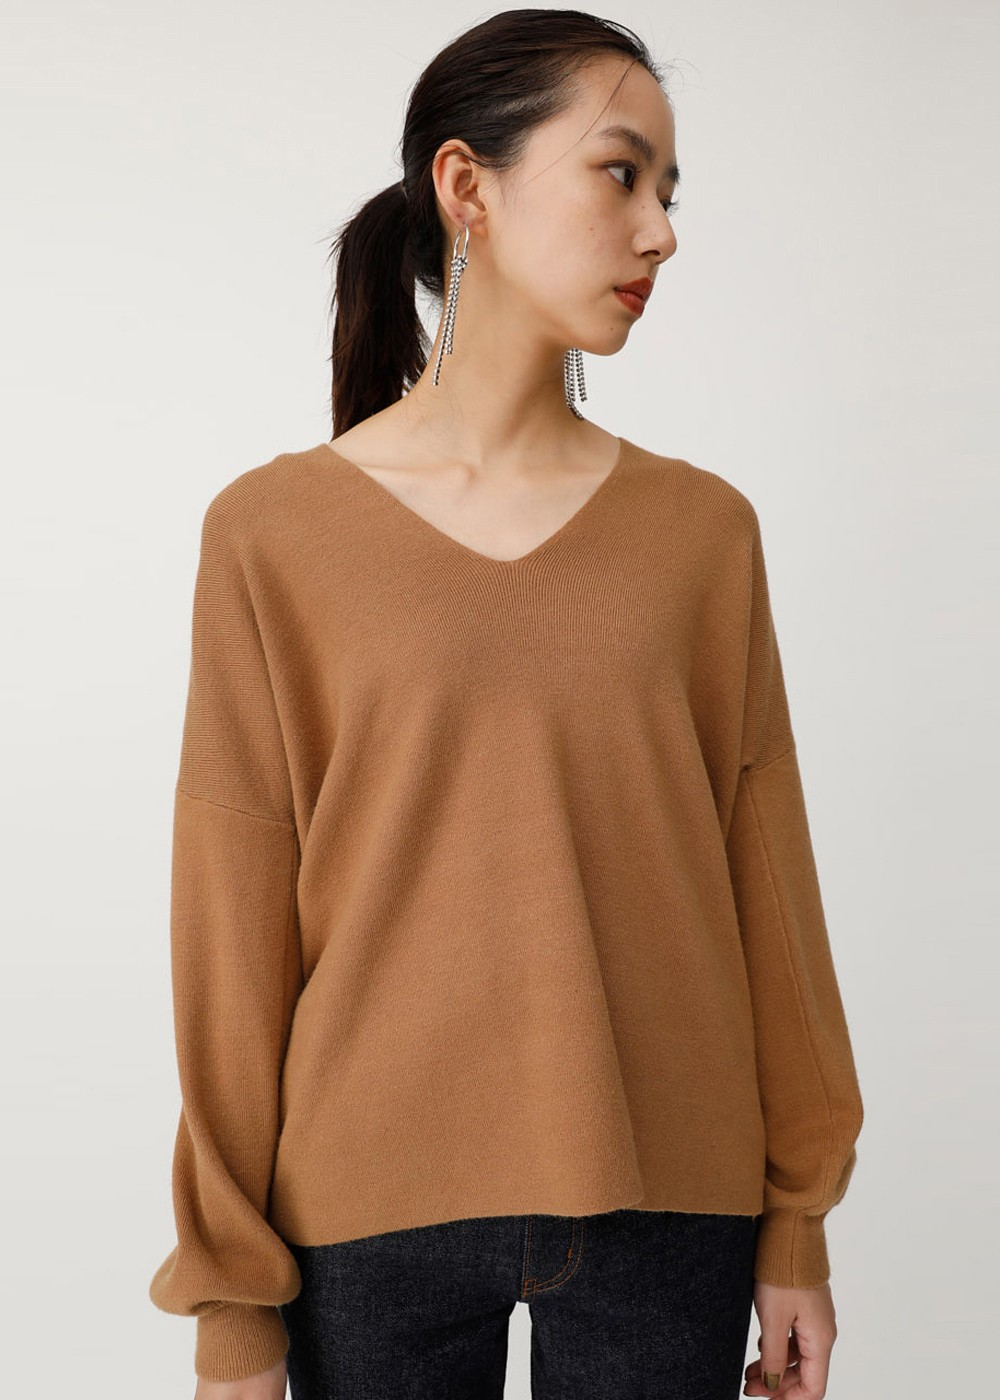 【最大60%OFF】V/N BOXY KNIT TOP|L/BRN|ニット|MOUSSY